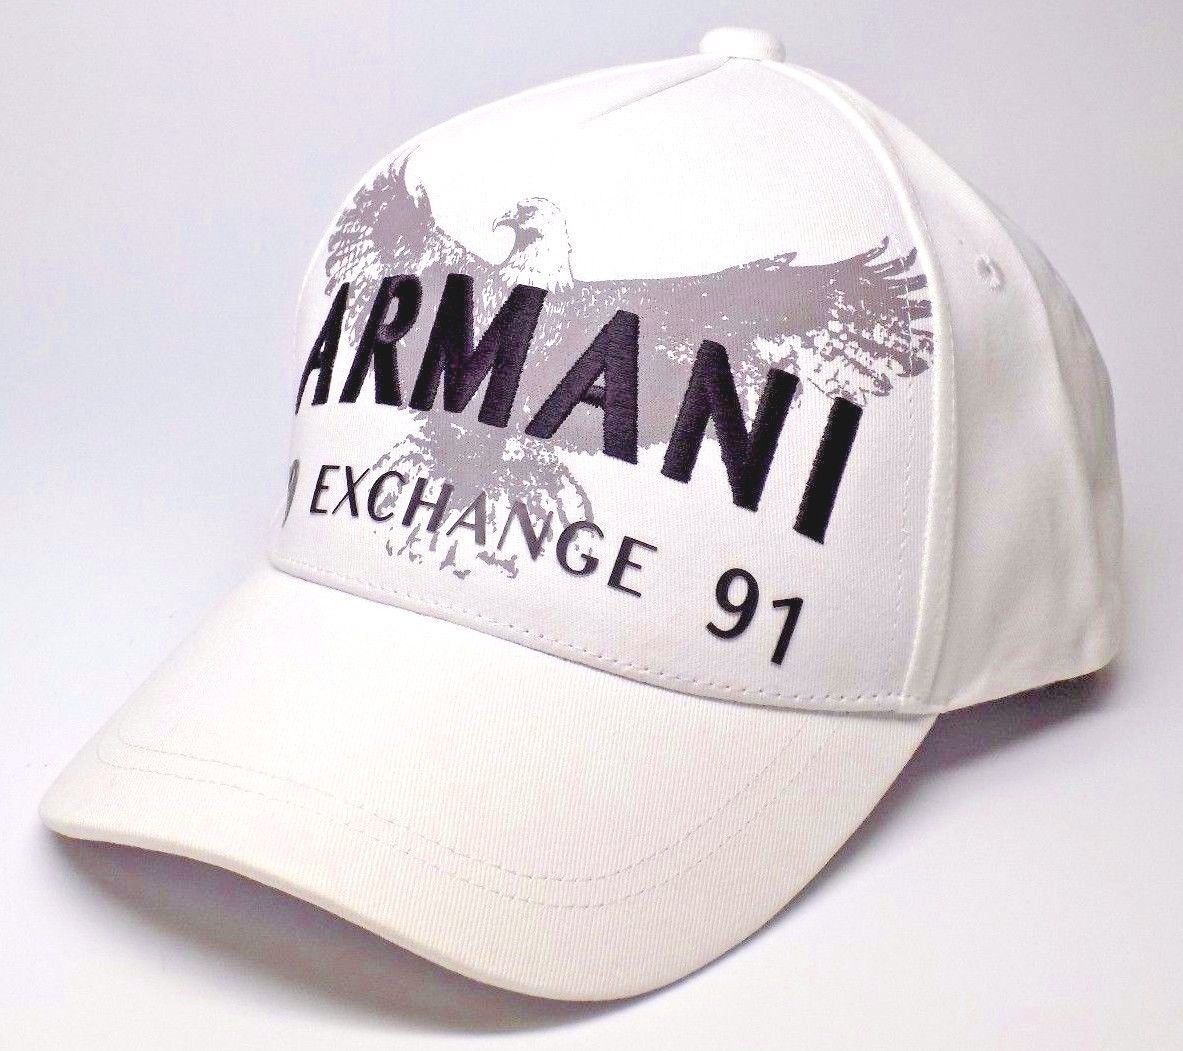 Exchange Armani logo eagle forecasting dress for everyday in 2019